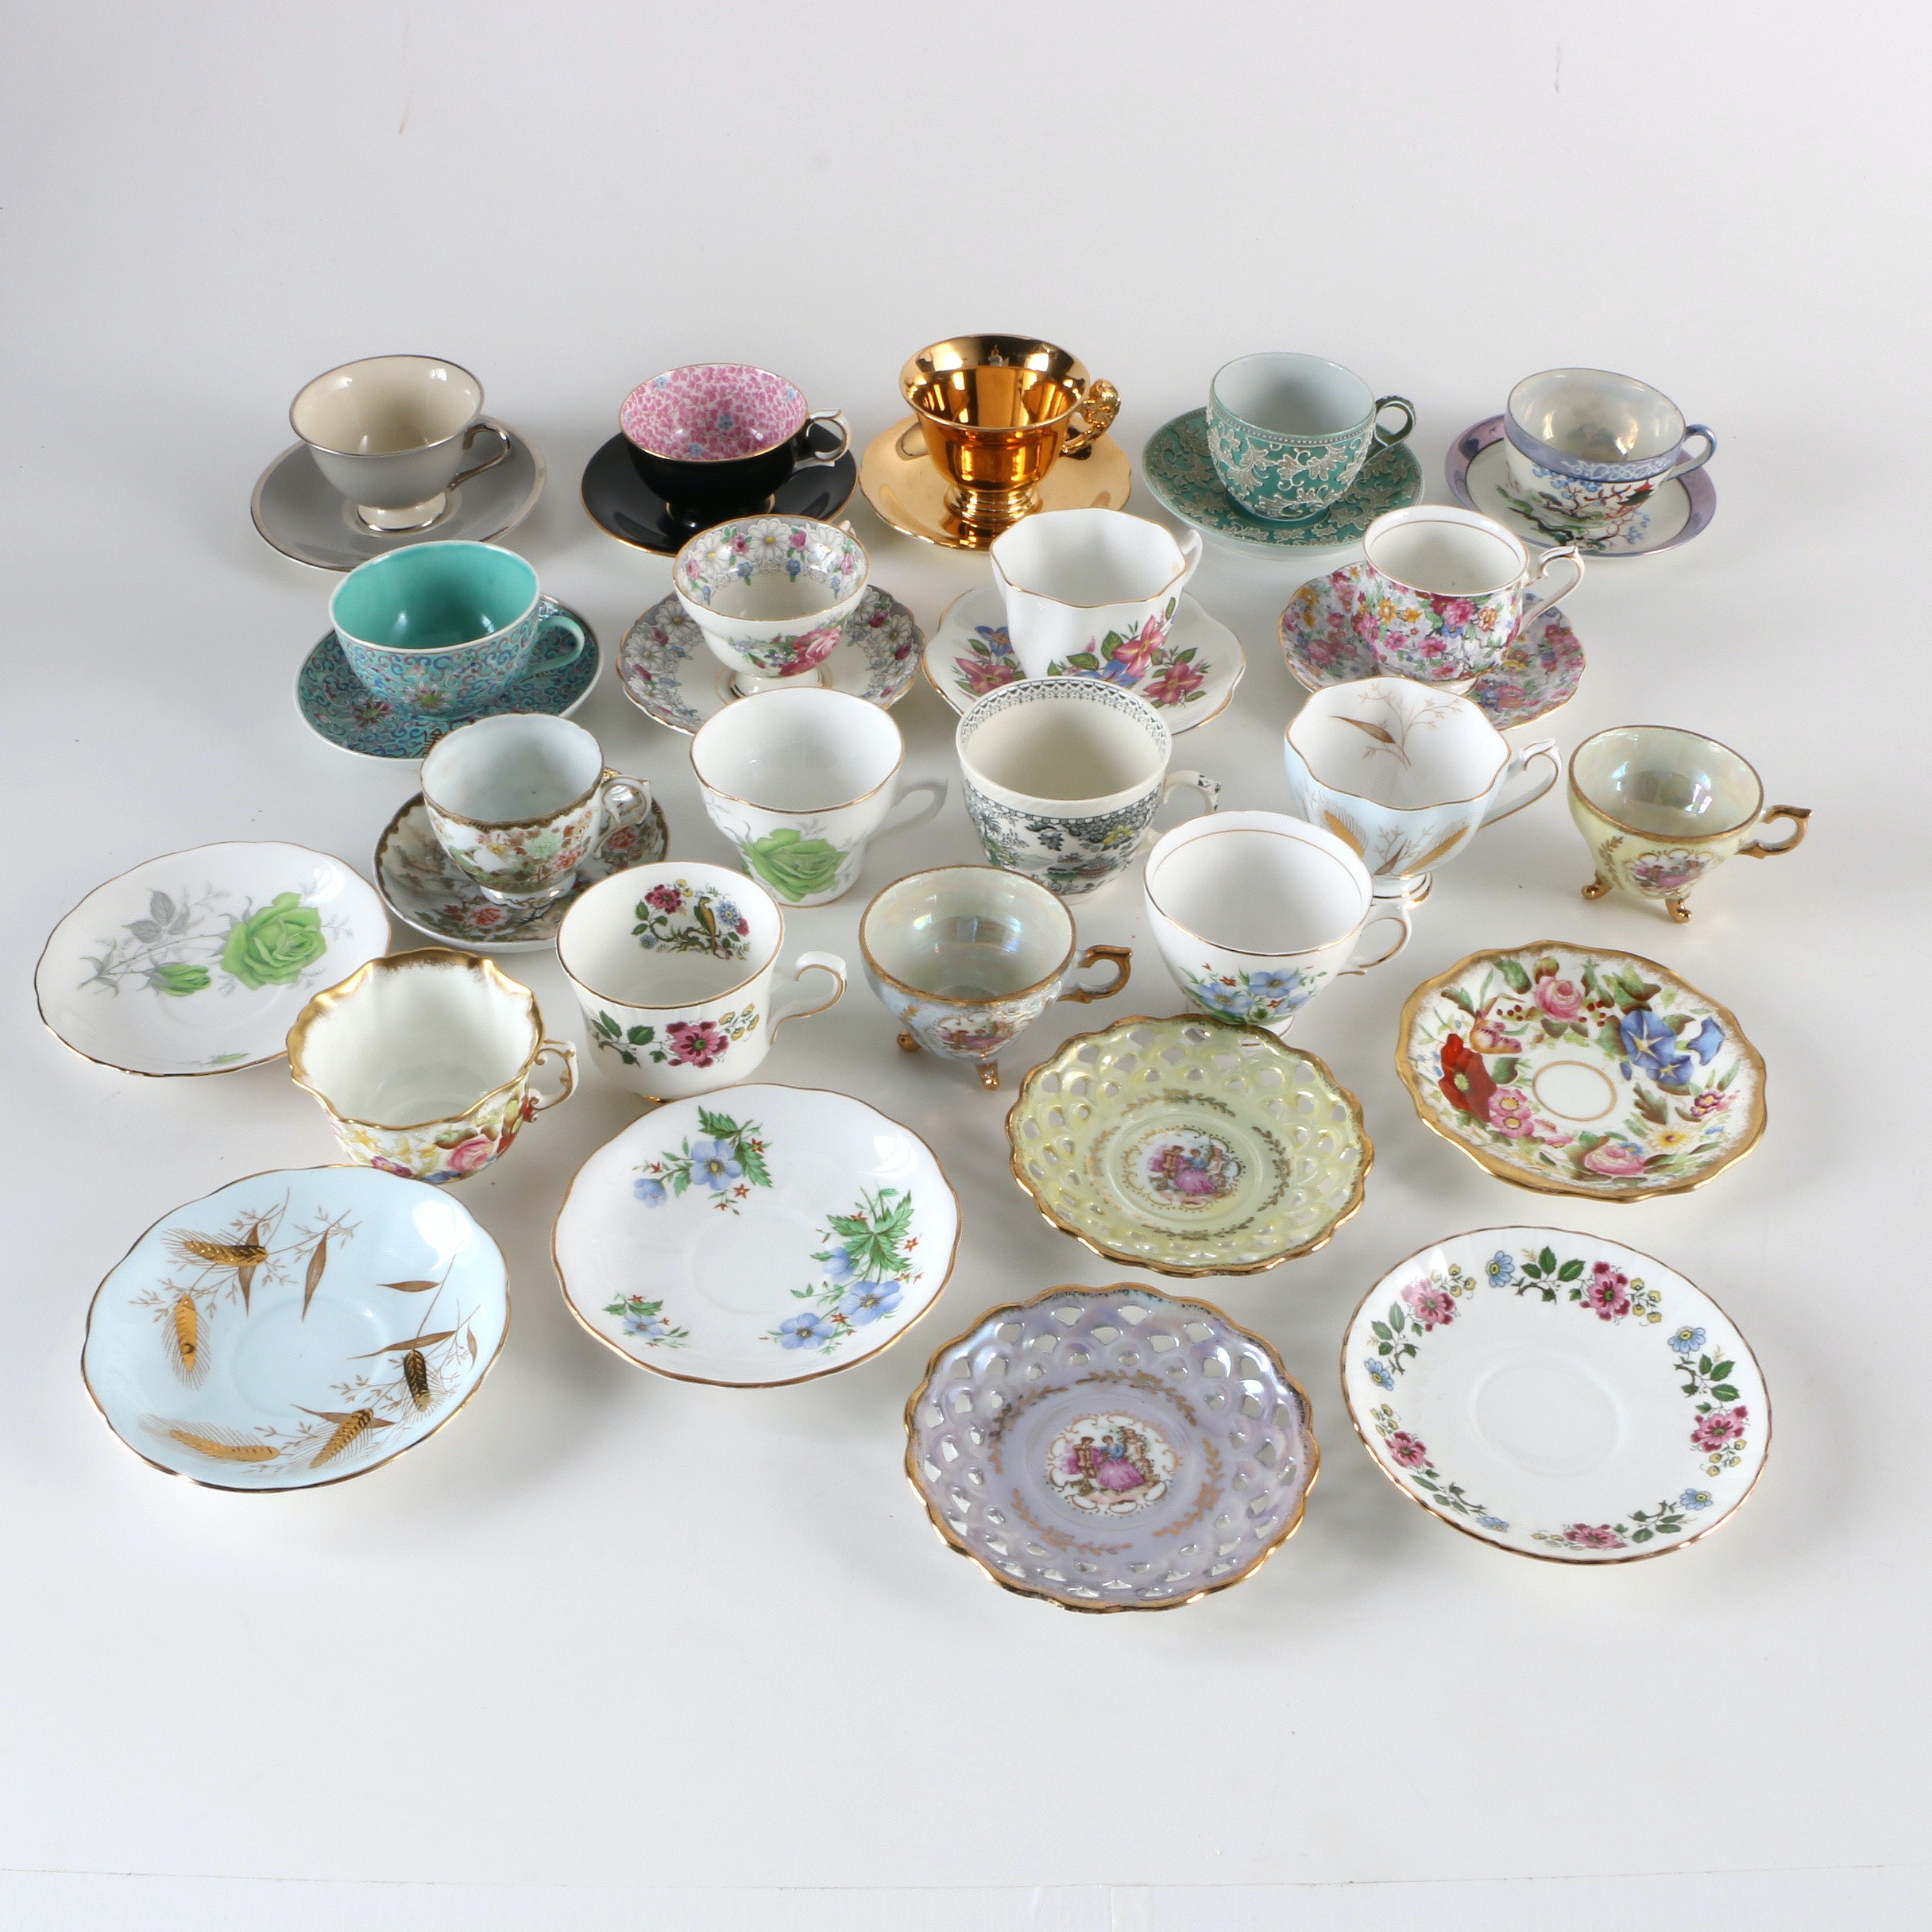 Assortment of Tea Cups and Saucers